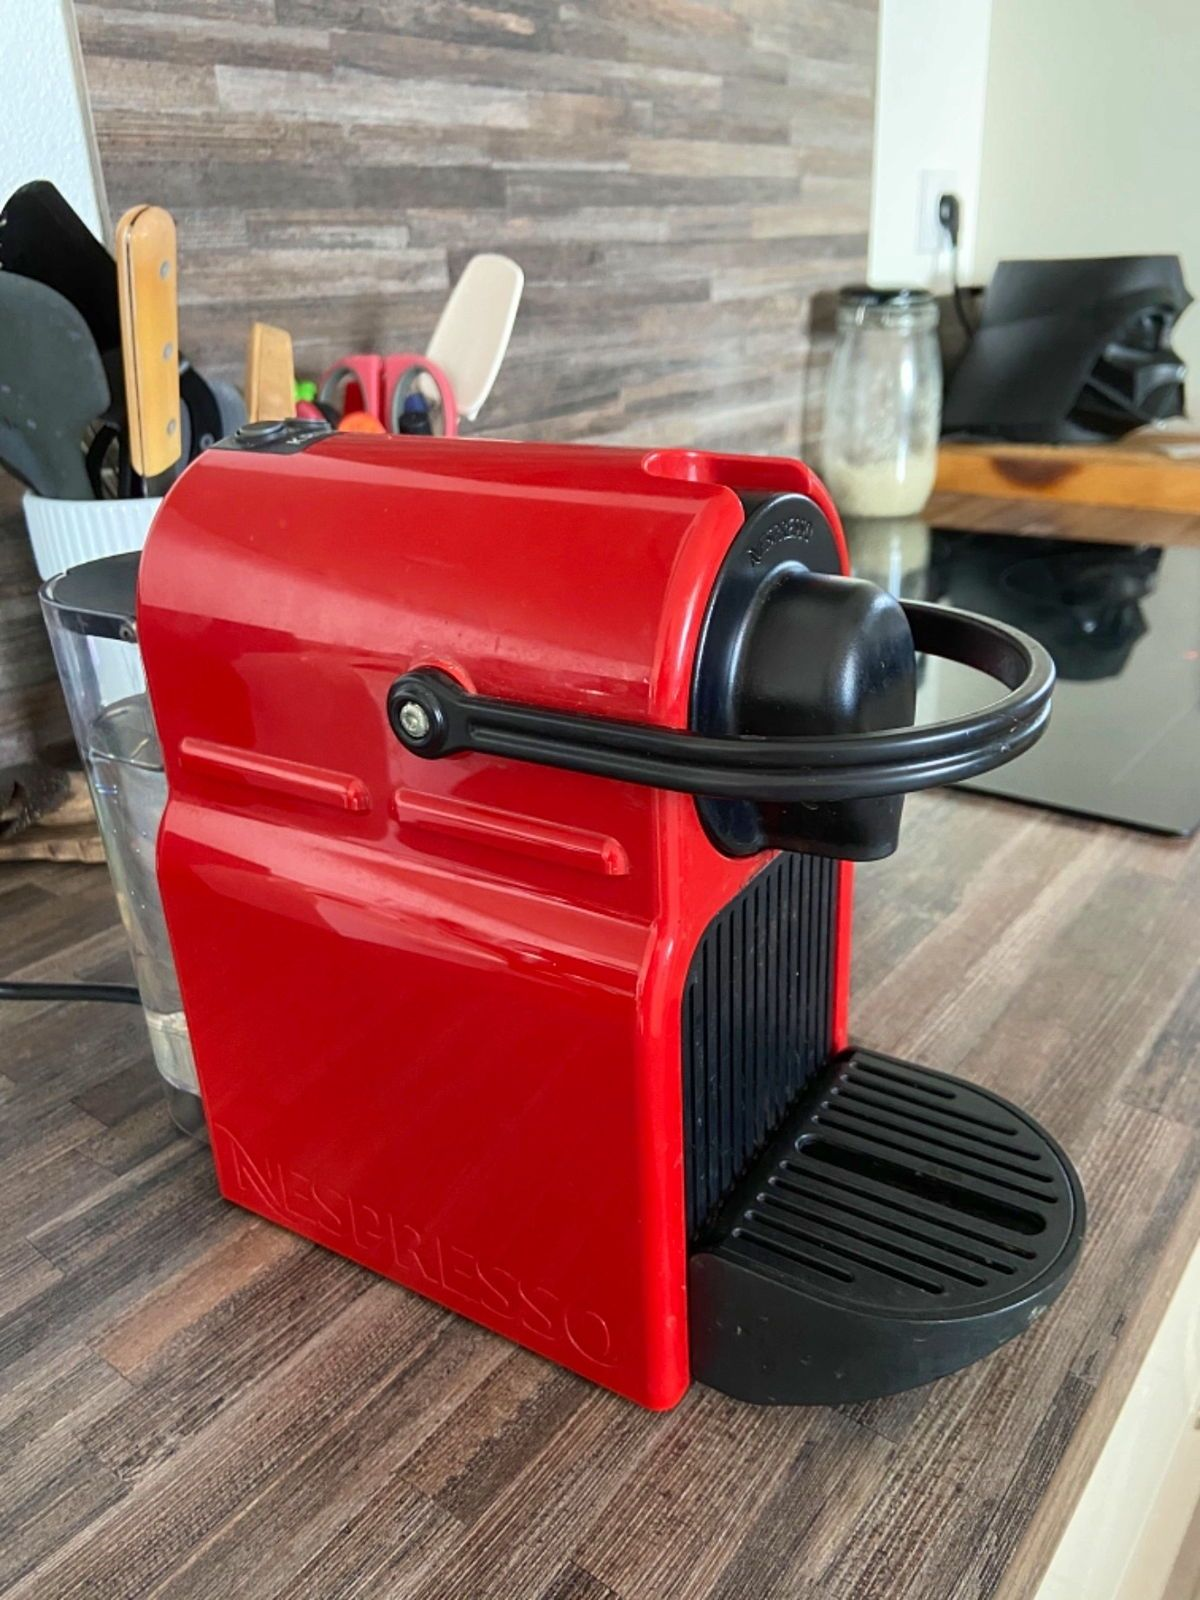 Cafetière Nespresso Inissia Krups Rouge